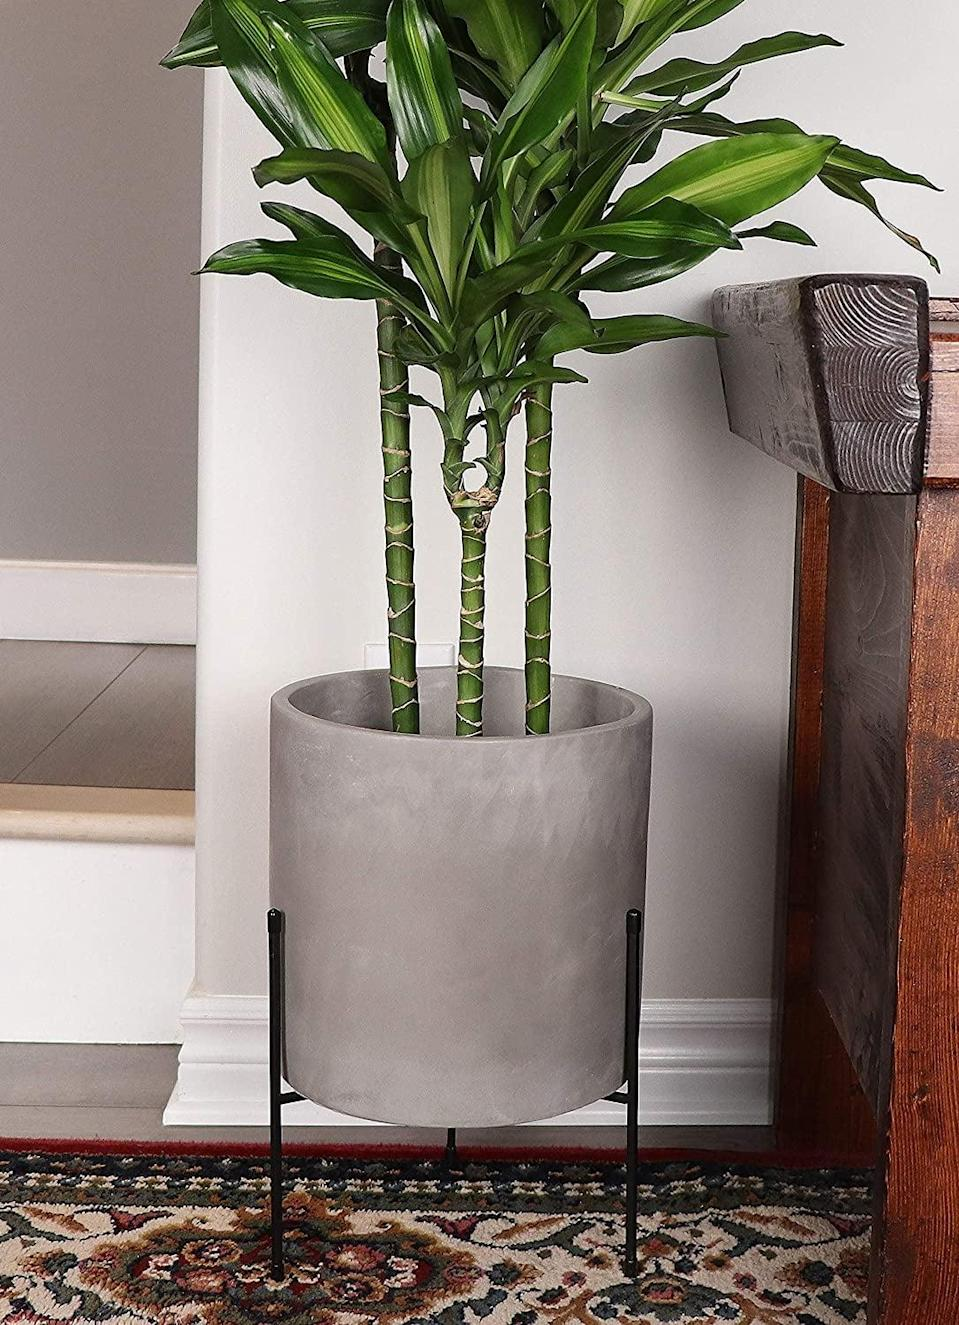 <p>For a clean and modern look, go for this <span>Finehous Cement Planter with Stand</span> ($70, originally $90).</p>